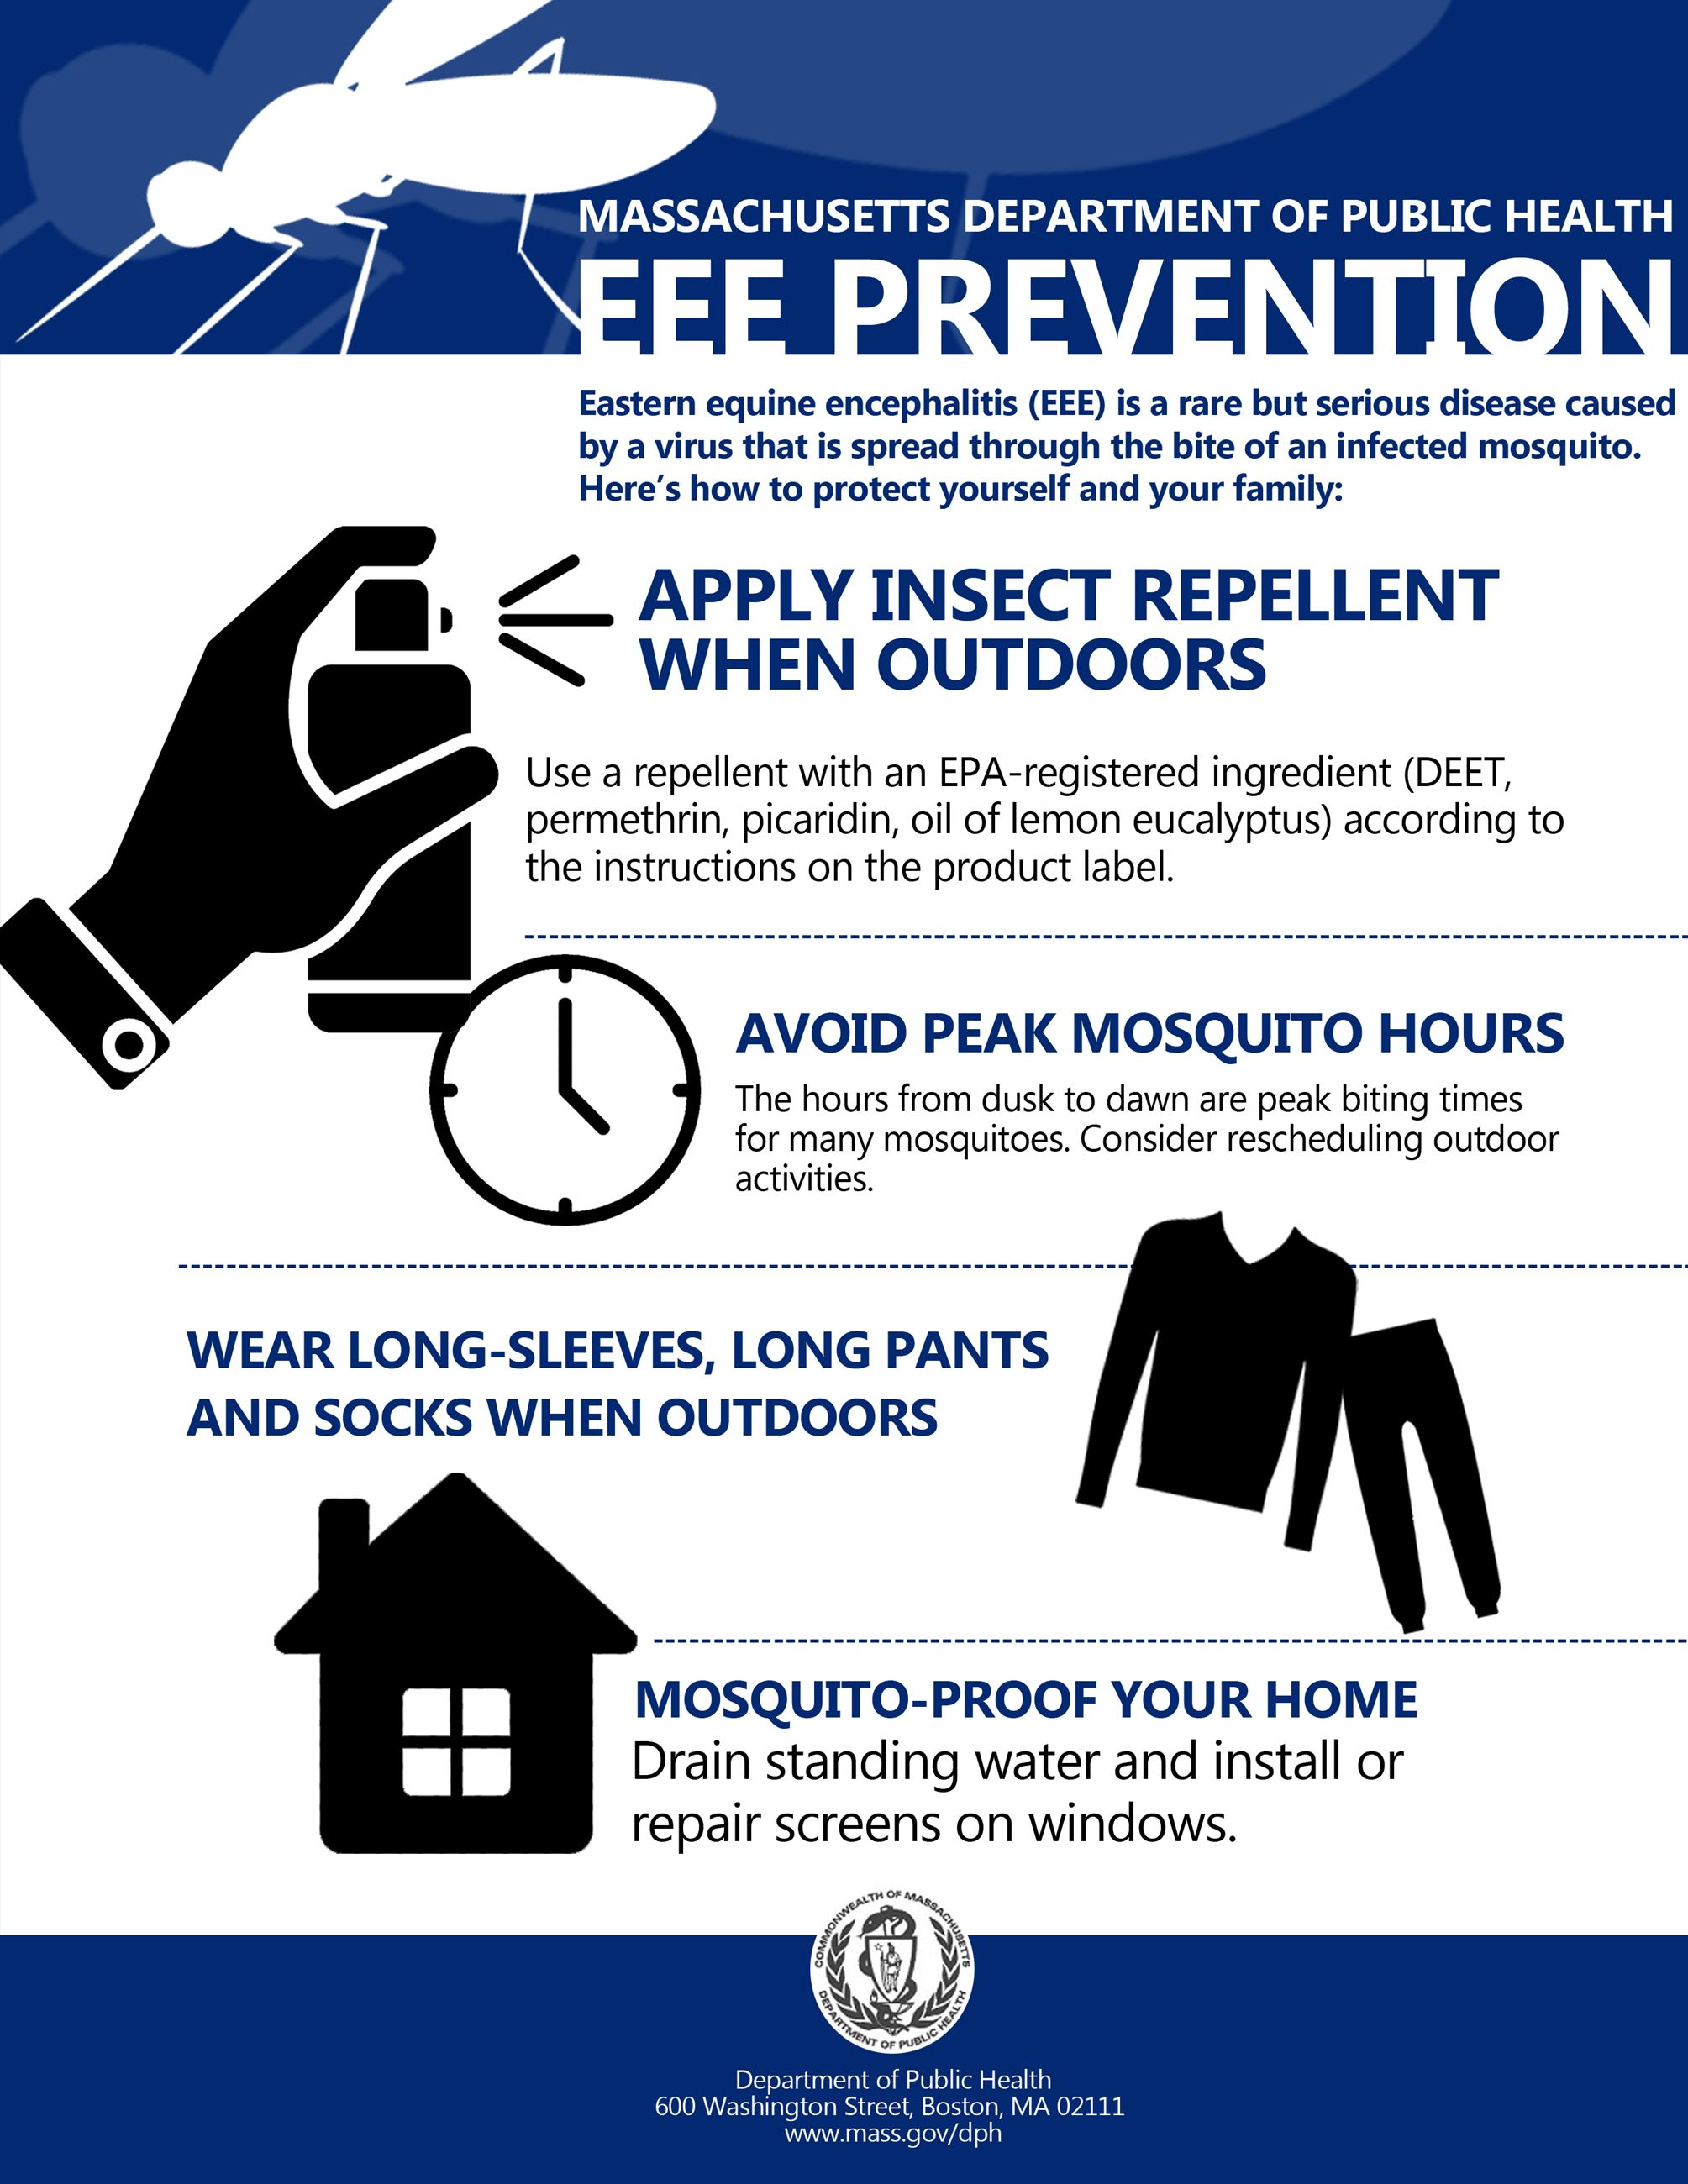 EEE-prevention-handout from MDPH